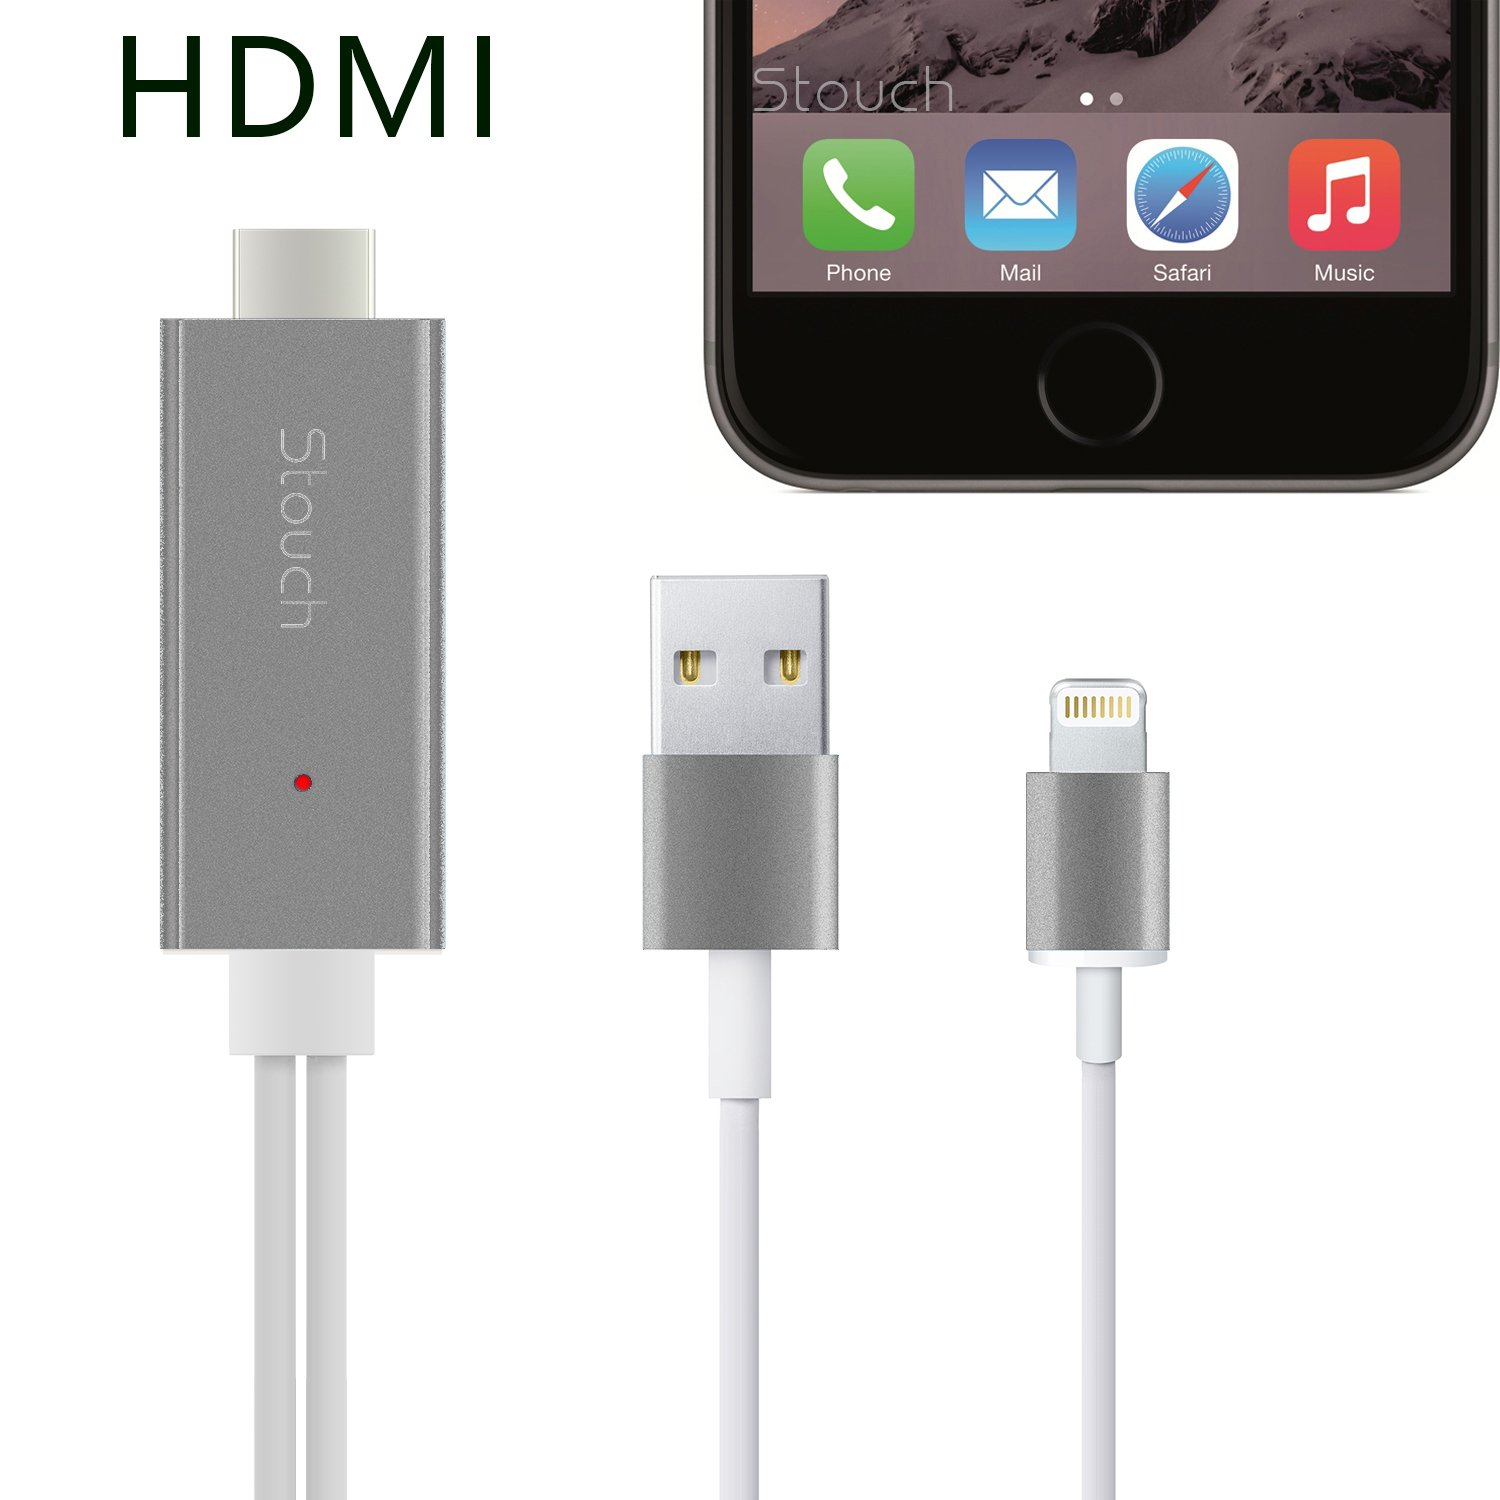 Hdmi Cable For Iphone Amazon